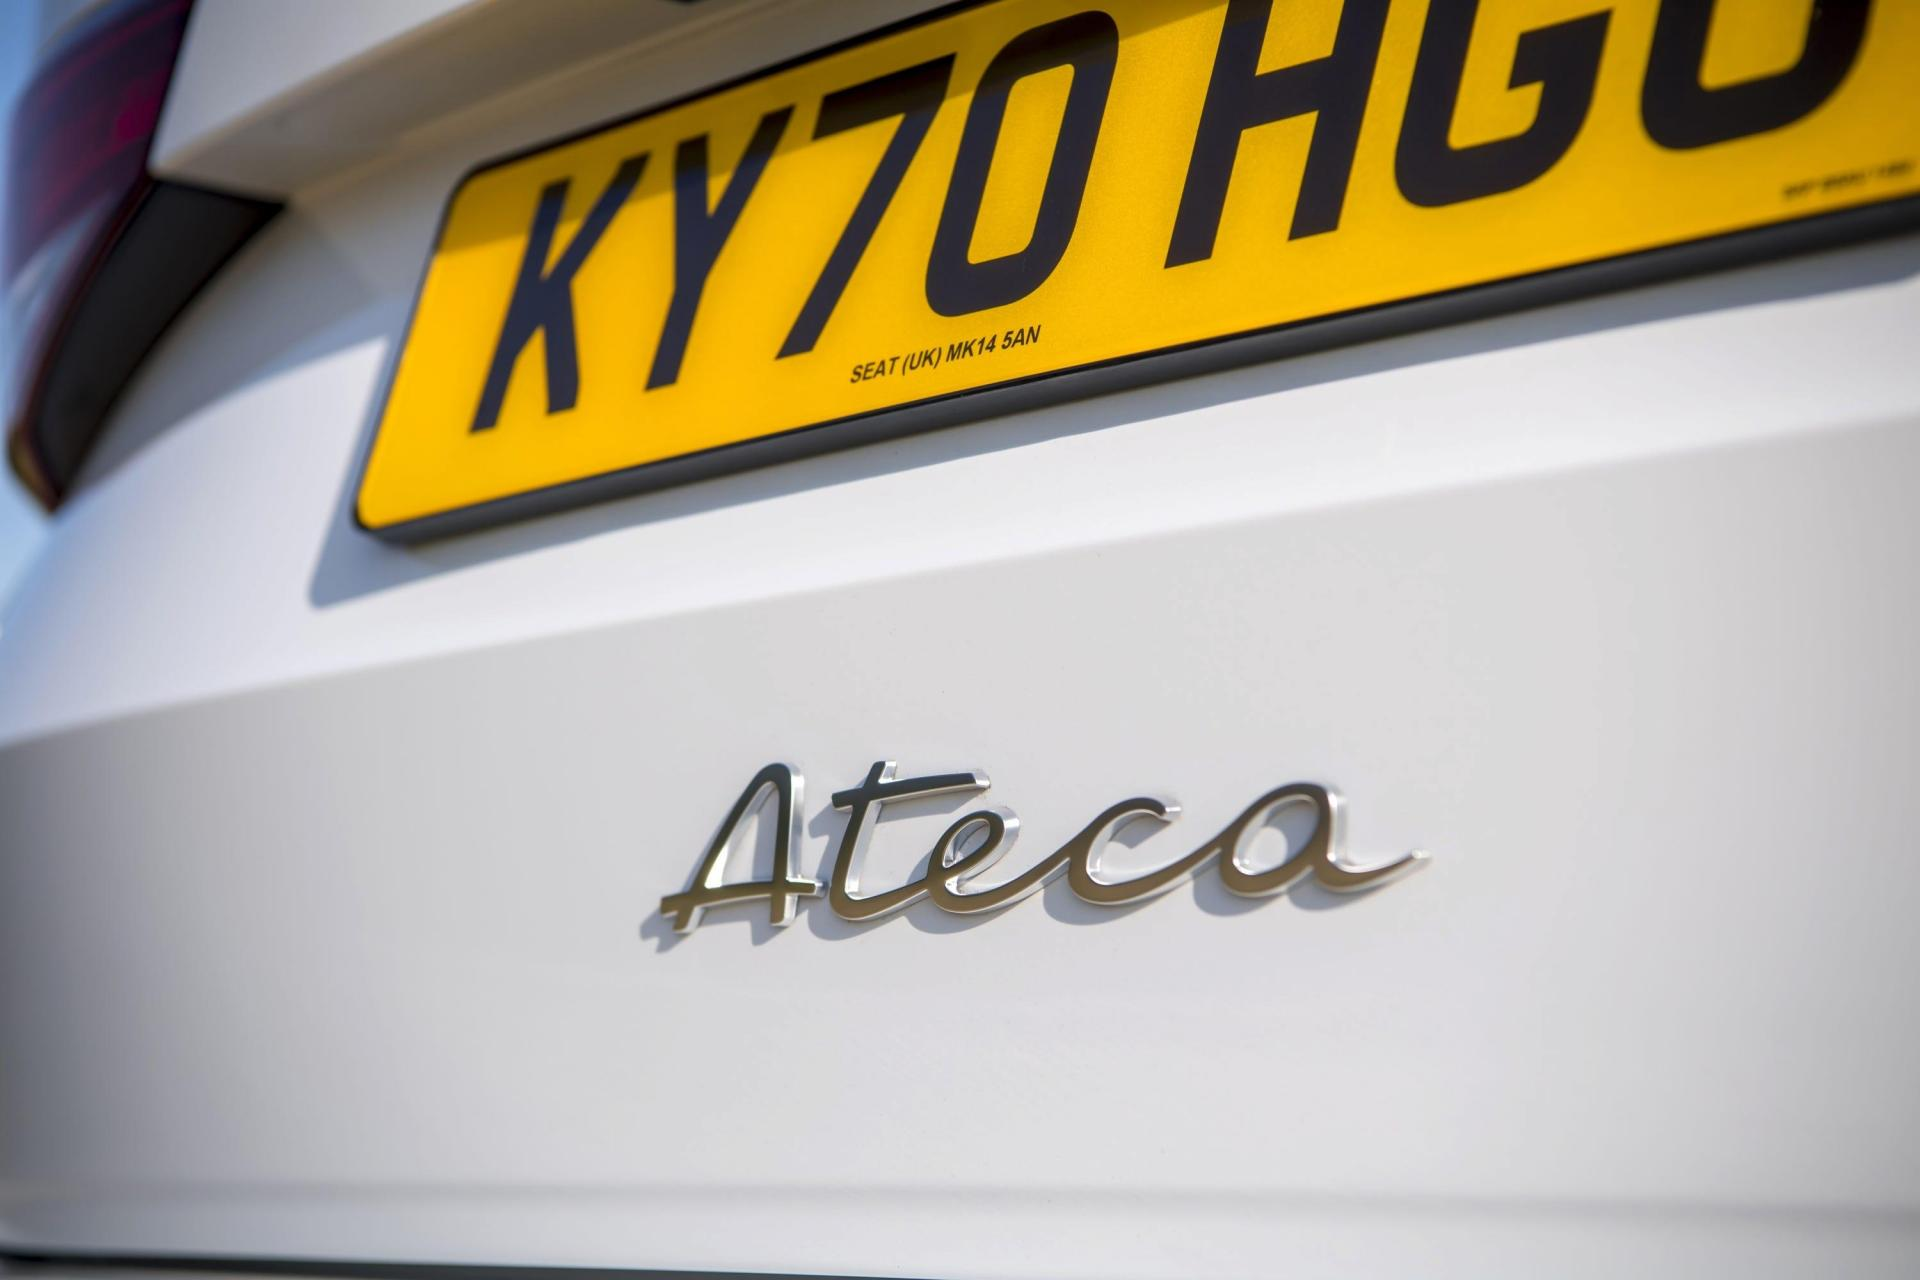 New handwriting-style badging has been used on the Ateca.